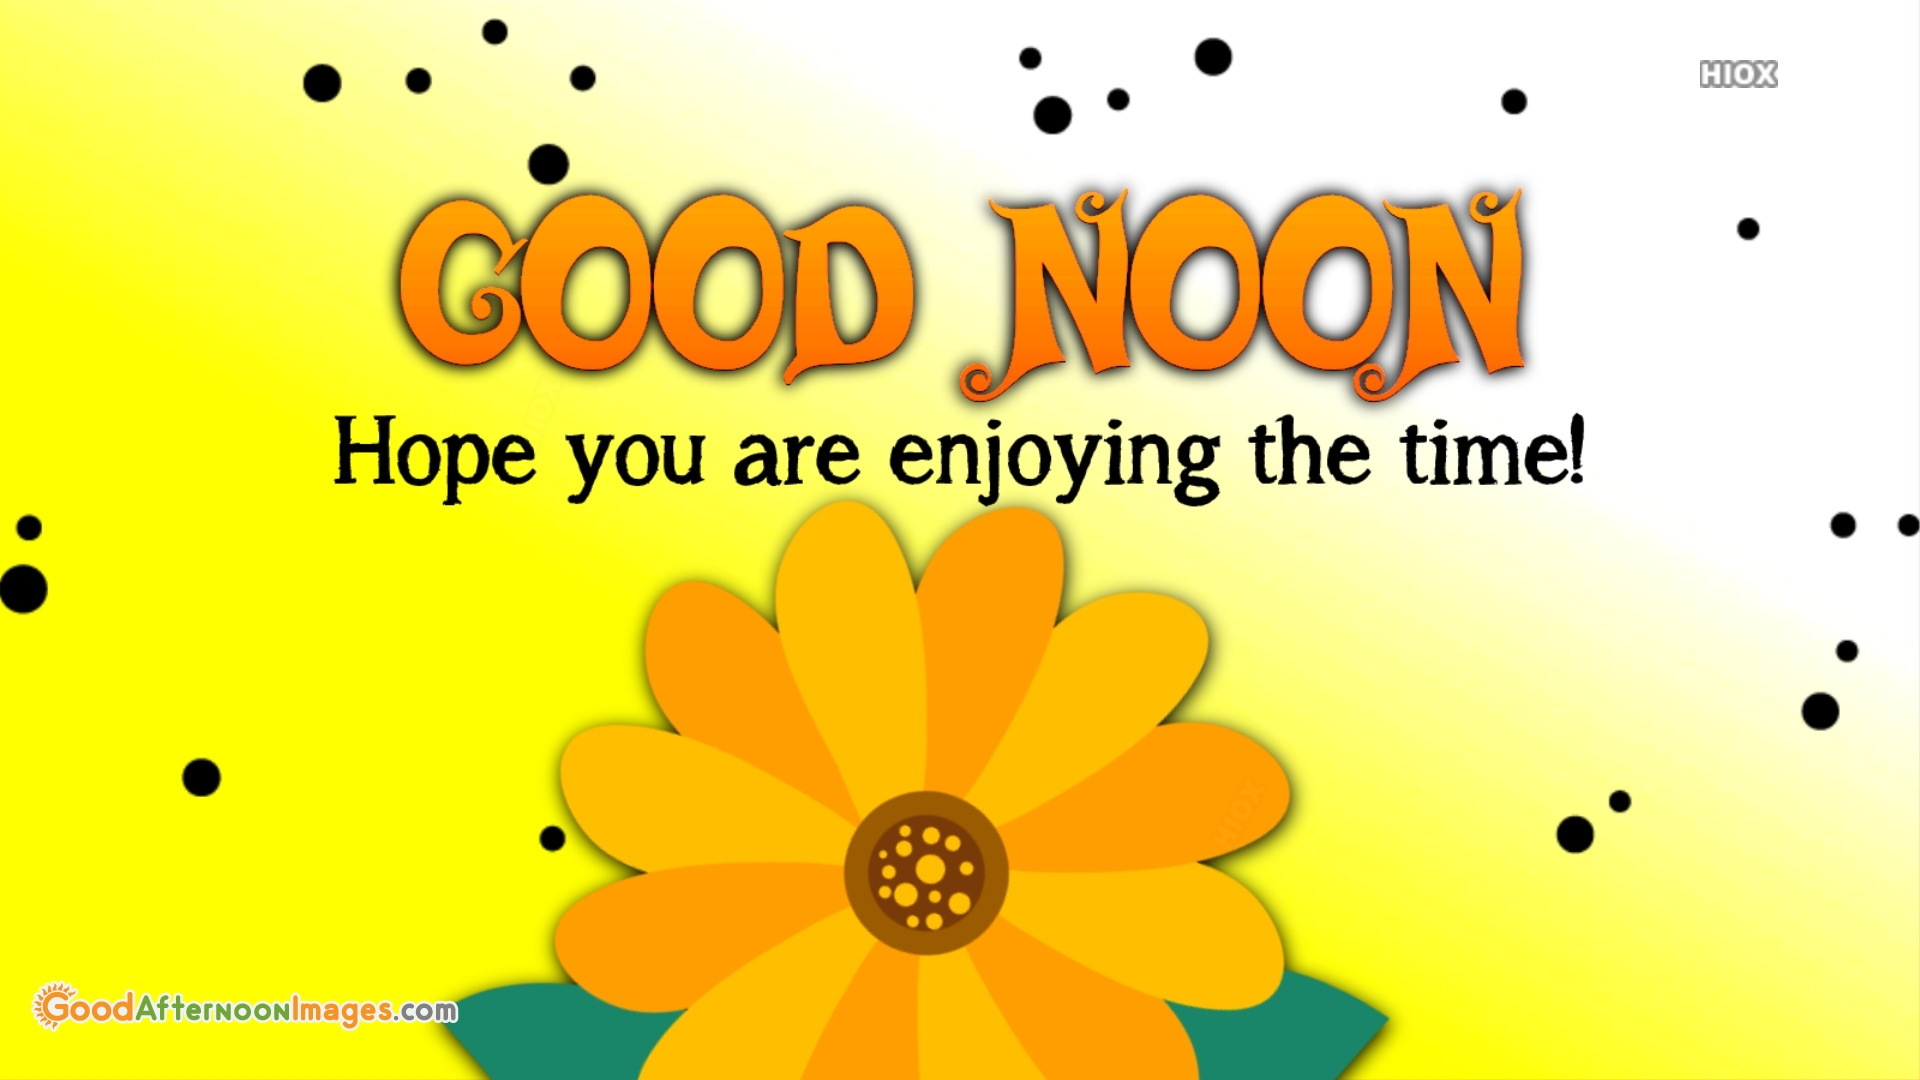 Hope You Are Enjoying The Time!